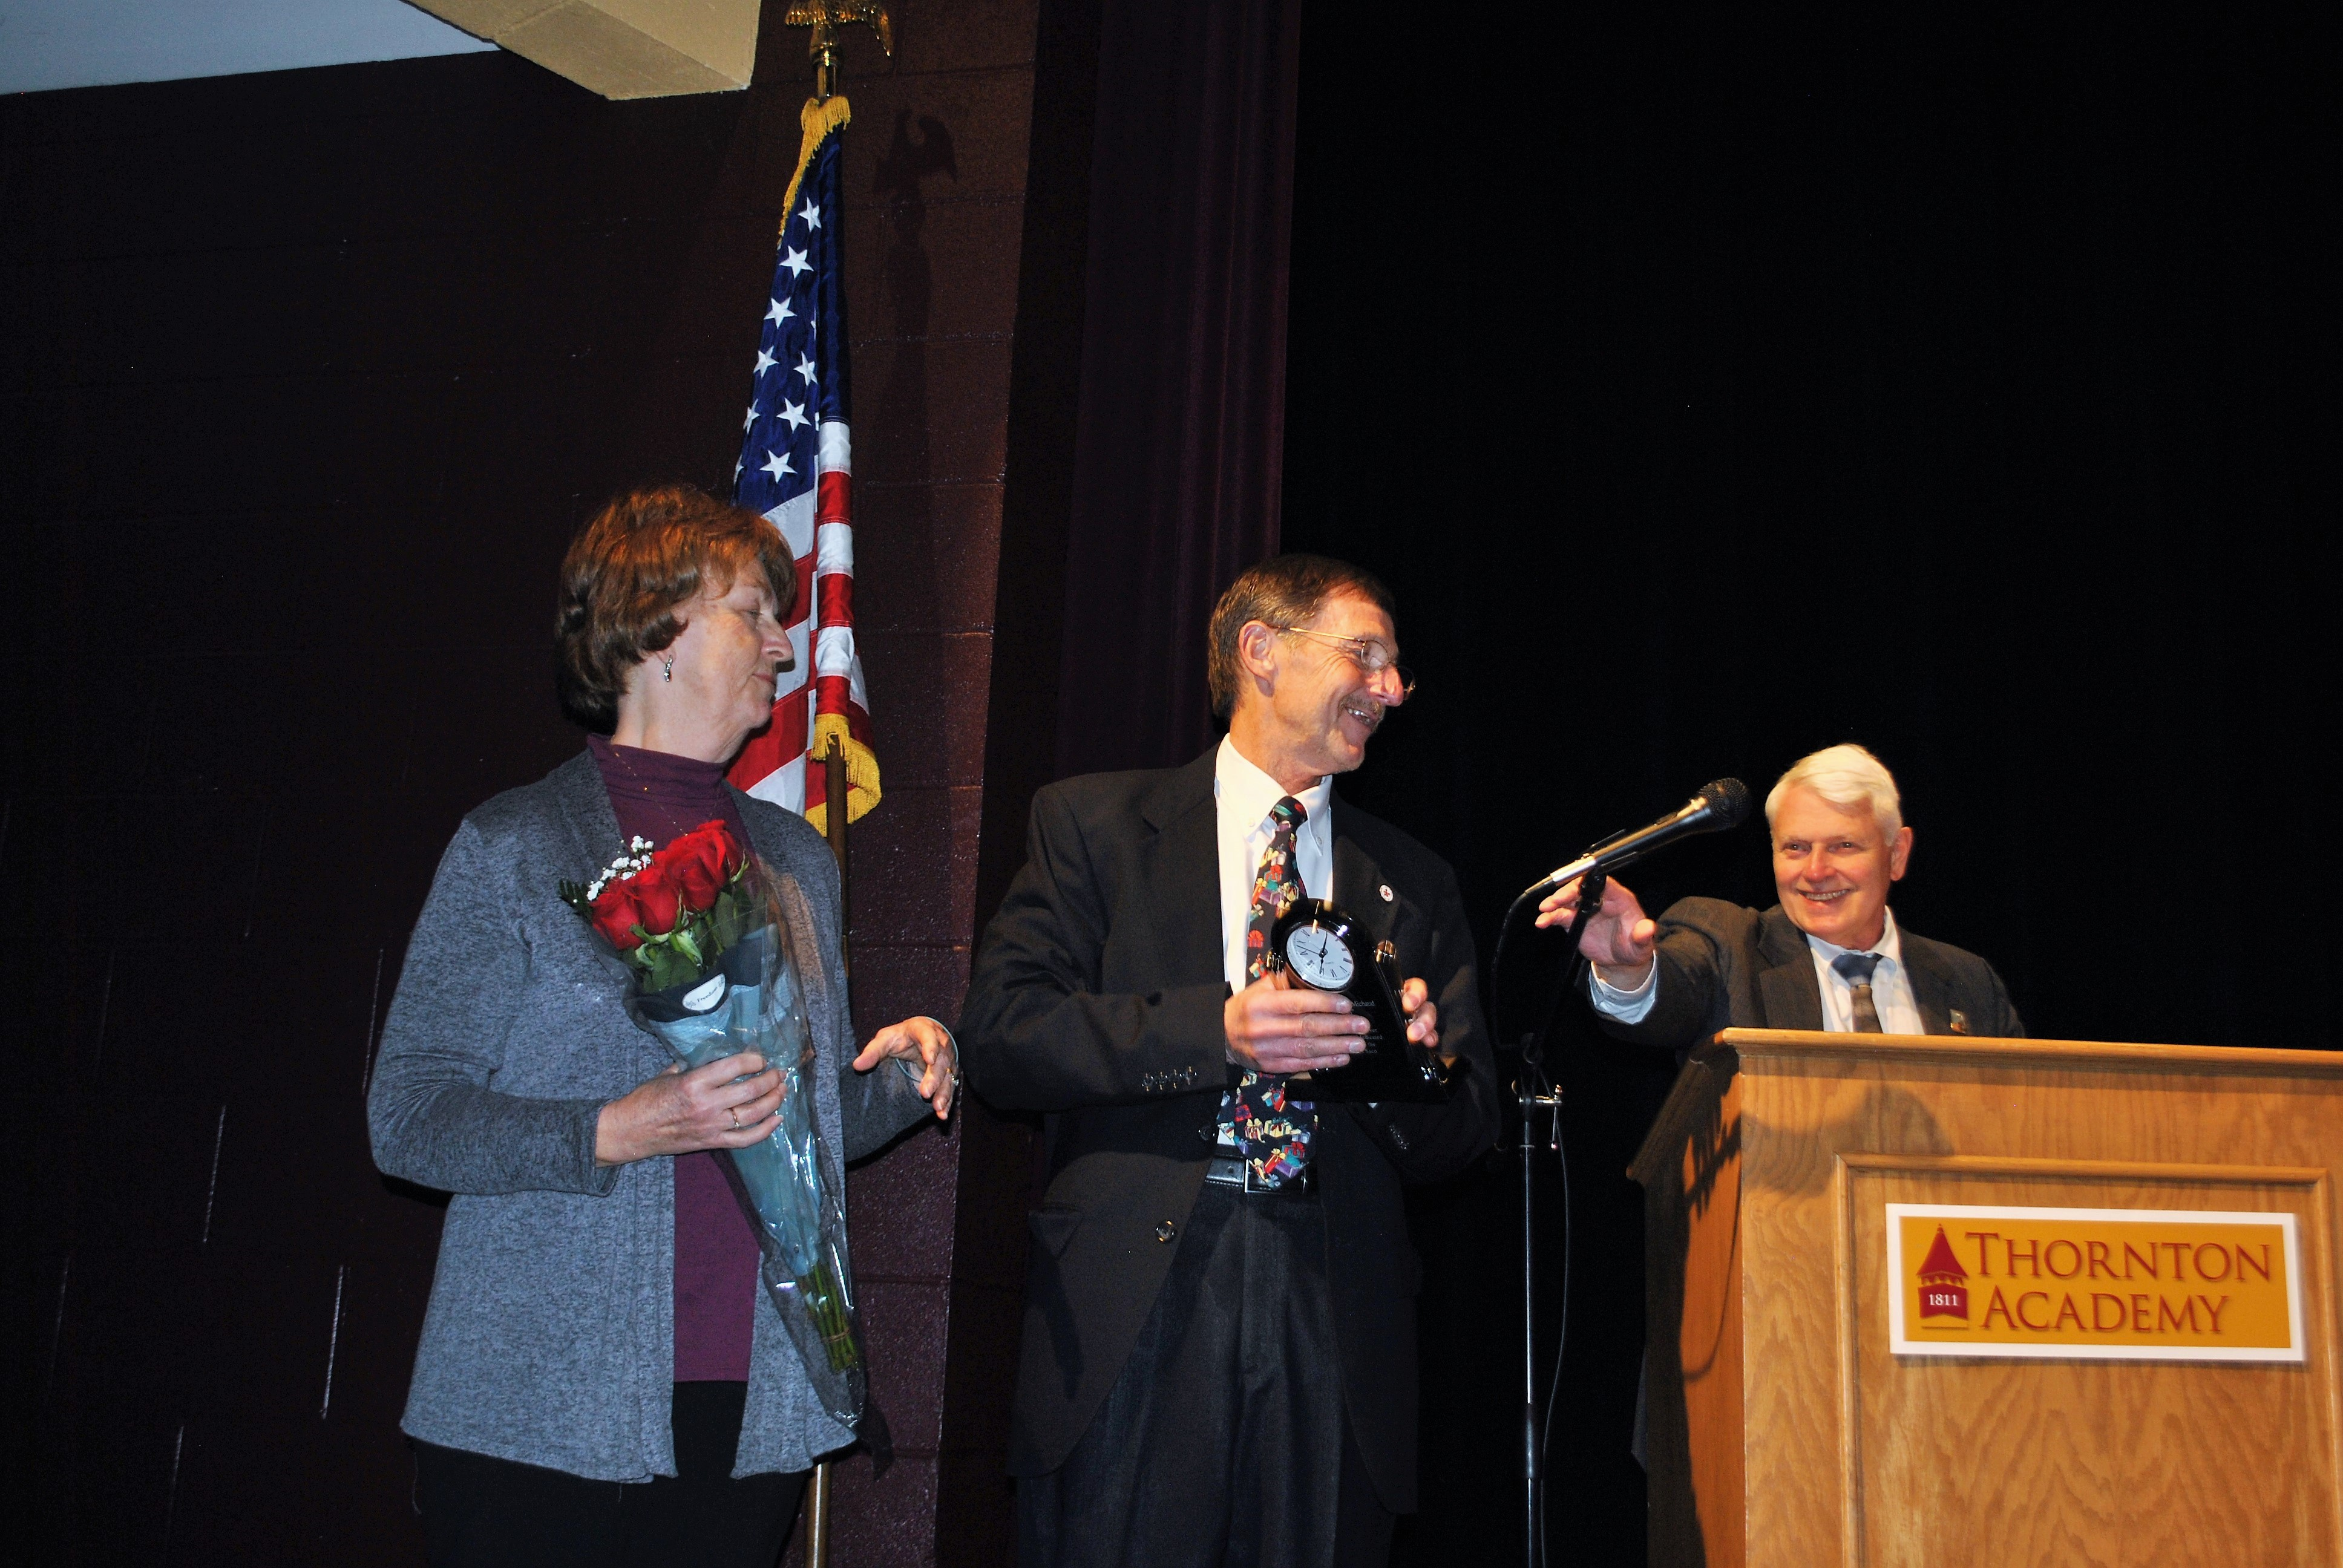 Saco Mayor Marston Lovell, right, hands a microphone to outgoing mayor Ron Michaud at the inauguration ceremony at Thornton Academy on Monday night. Standing next to Michaud is his wife, Hilda. LIZ GOTTHELF/Journal Tribune